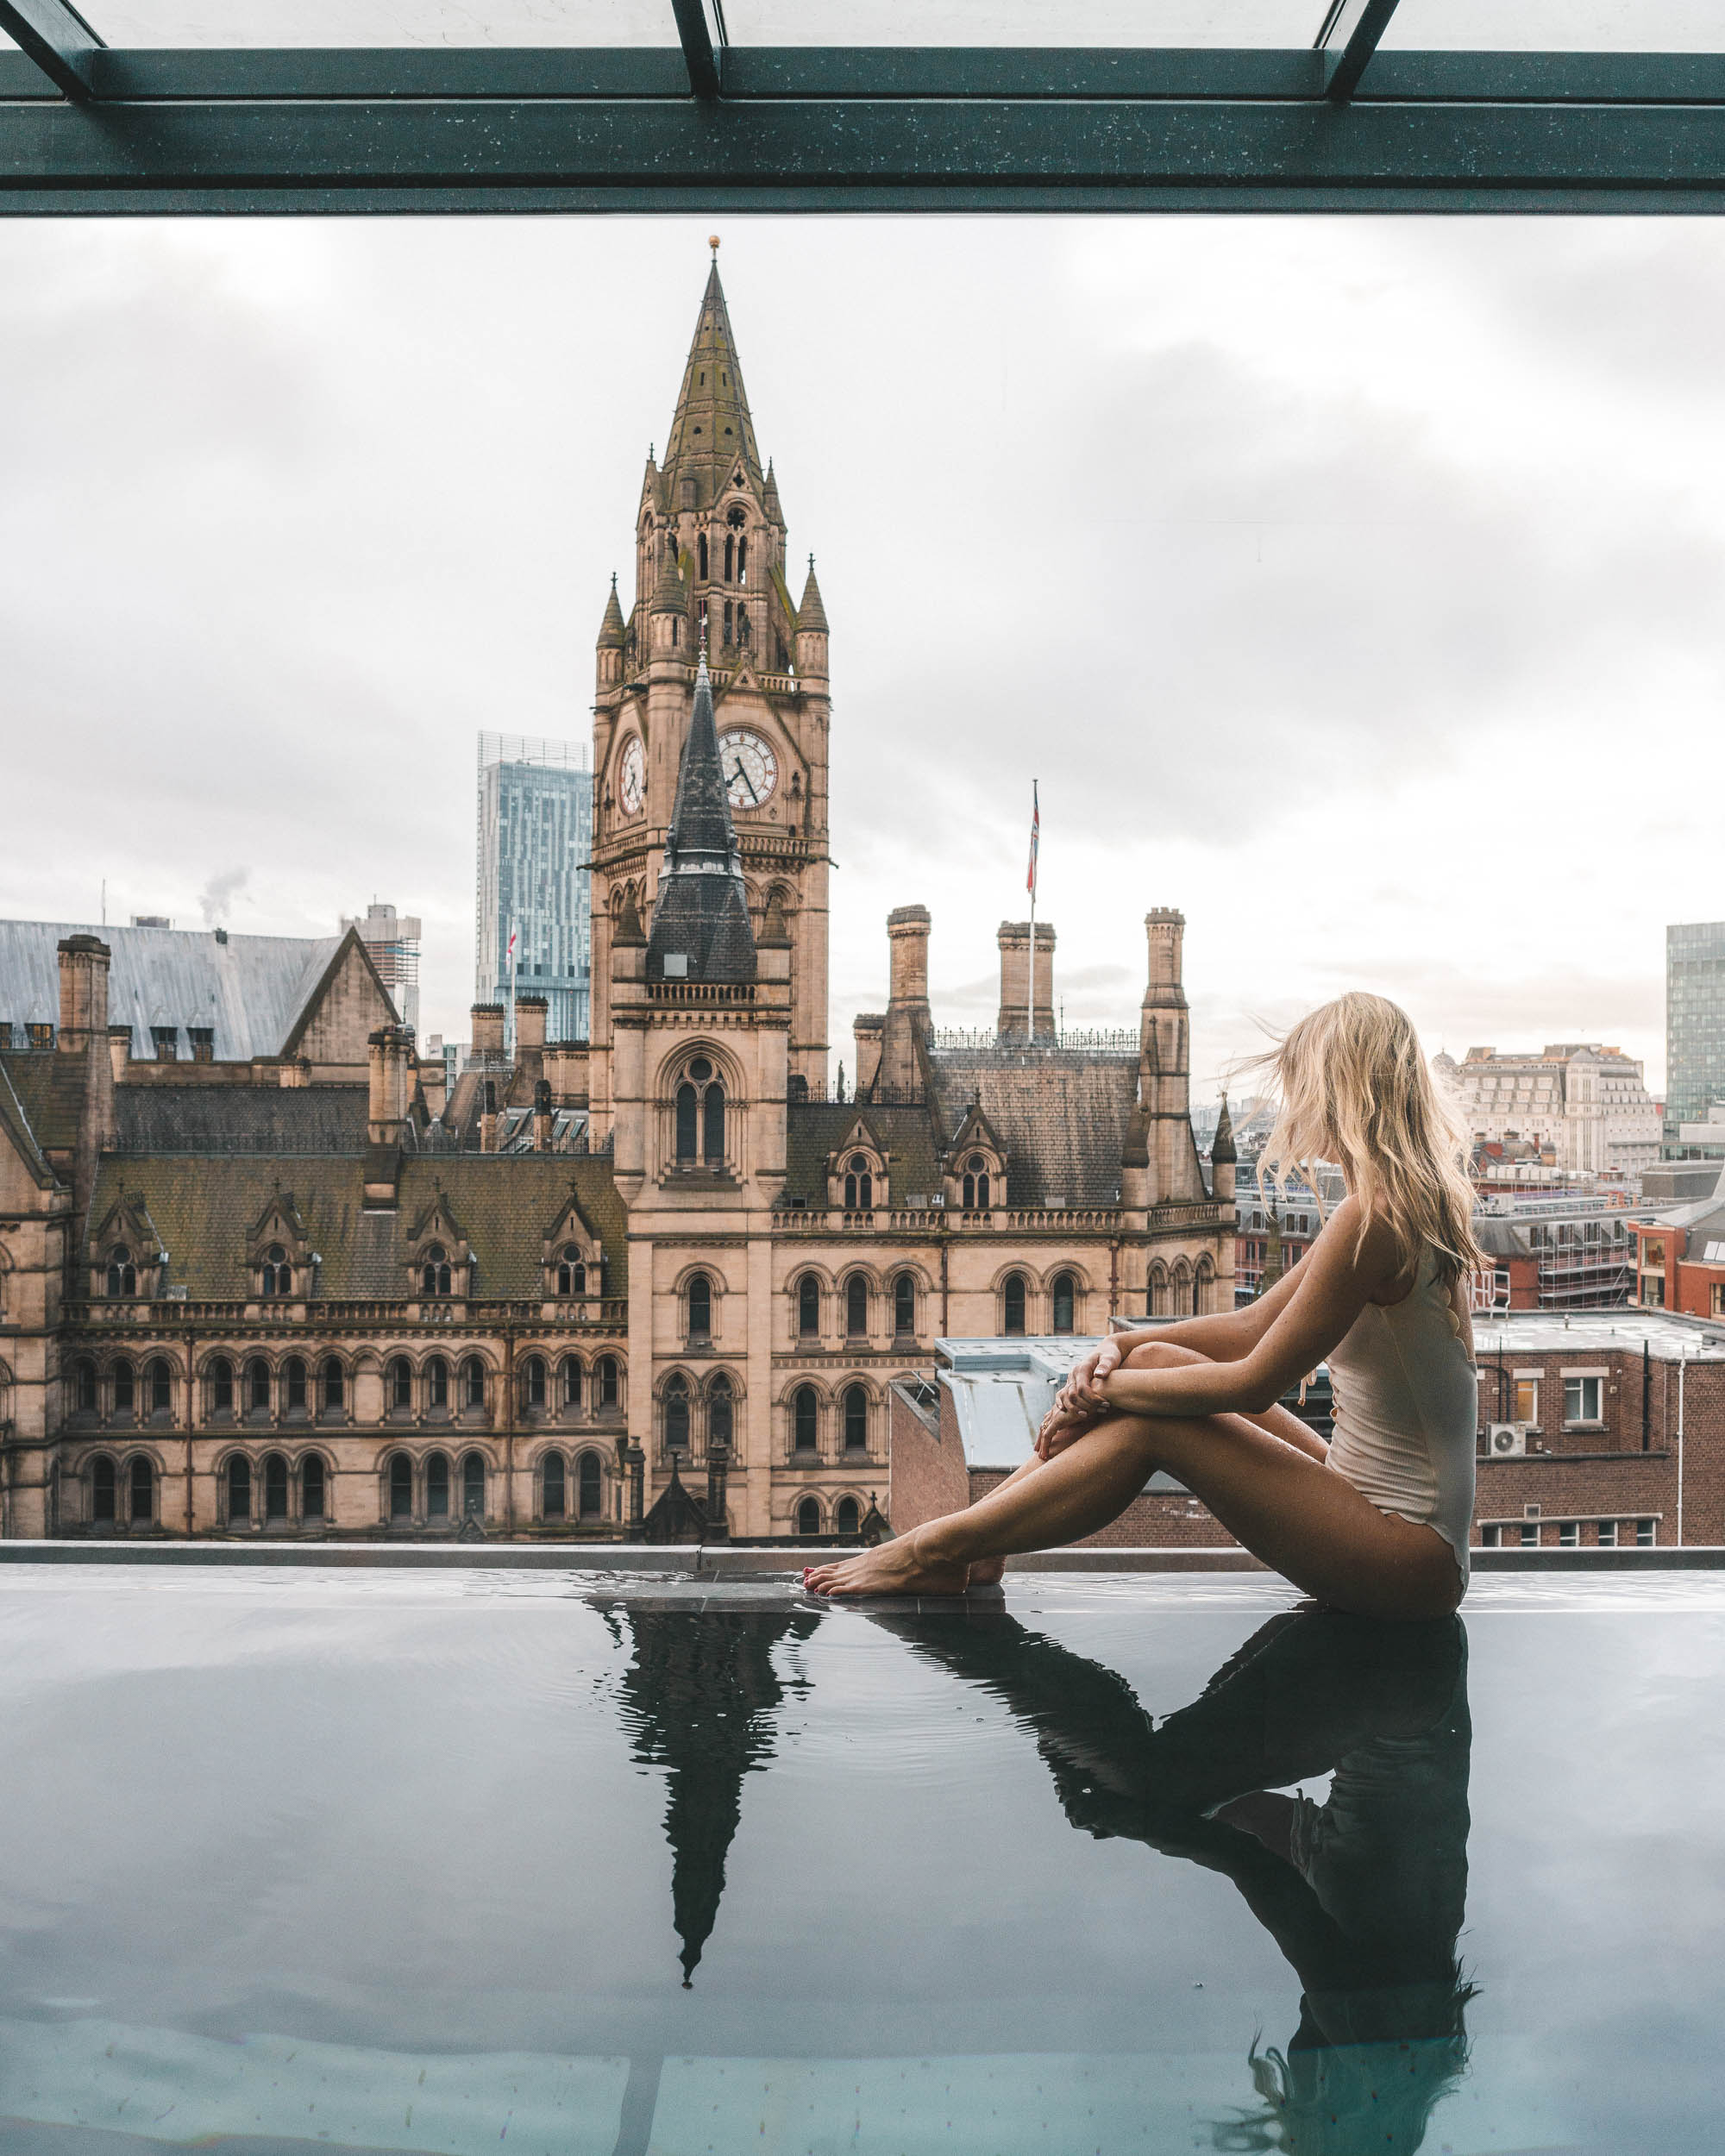 King street townhouse hotel rooftop pool city view Manchester England United Kingdom 24 Hour Guide one day Find Us Lost Selena Taylor